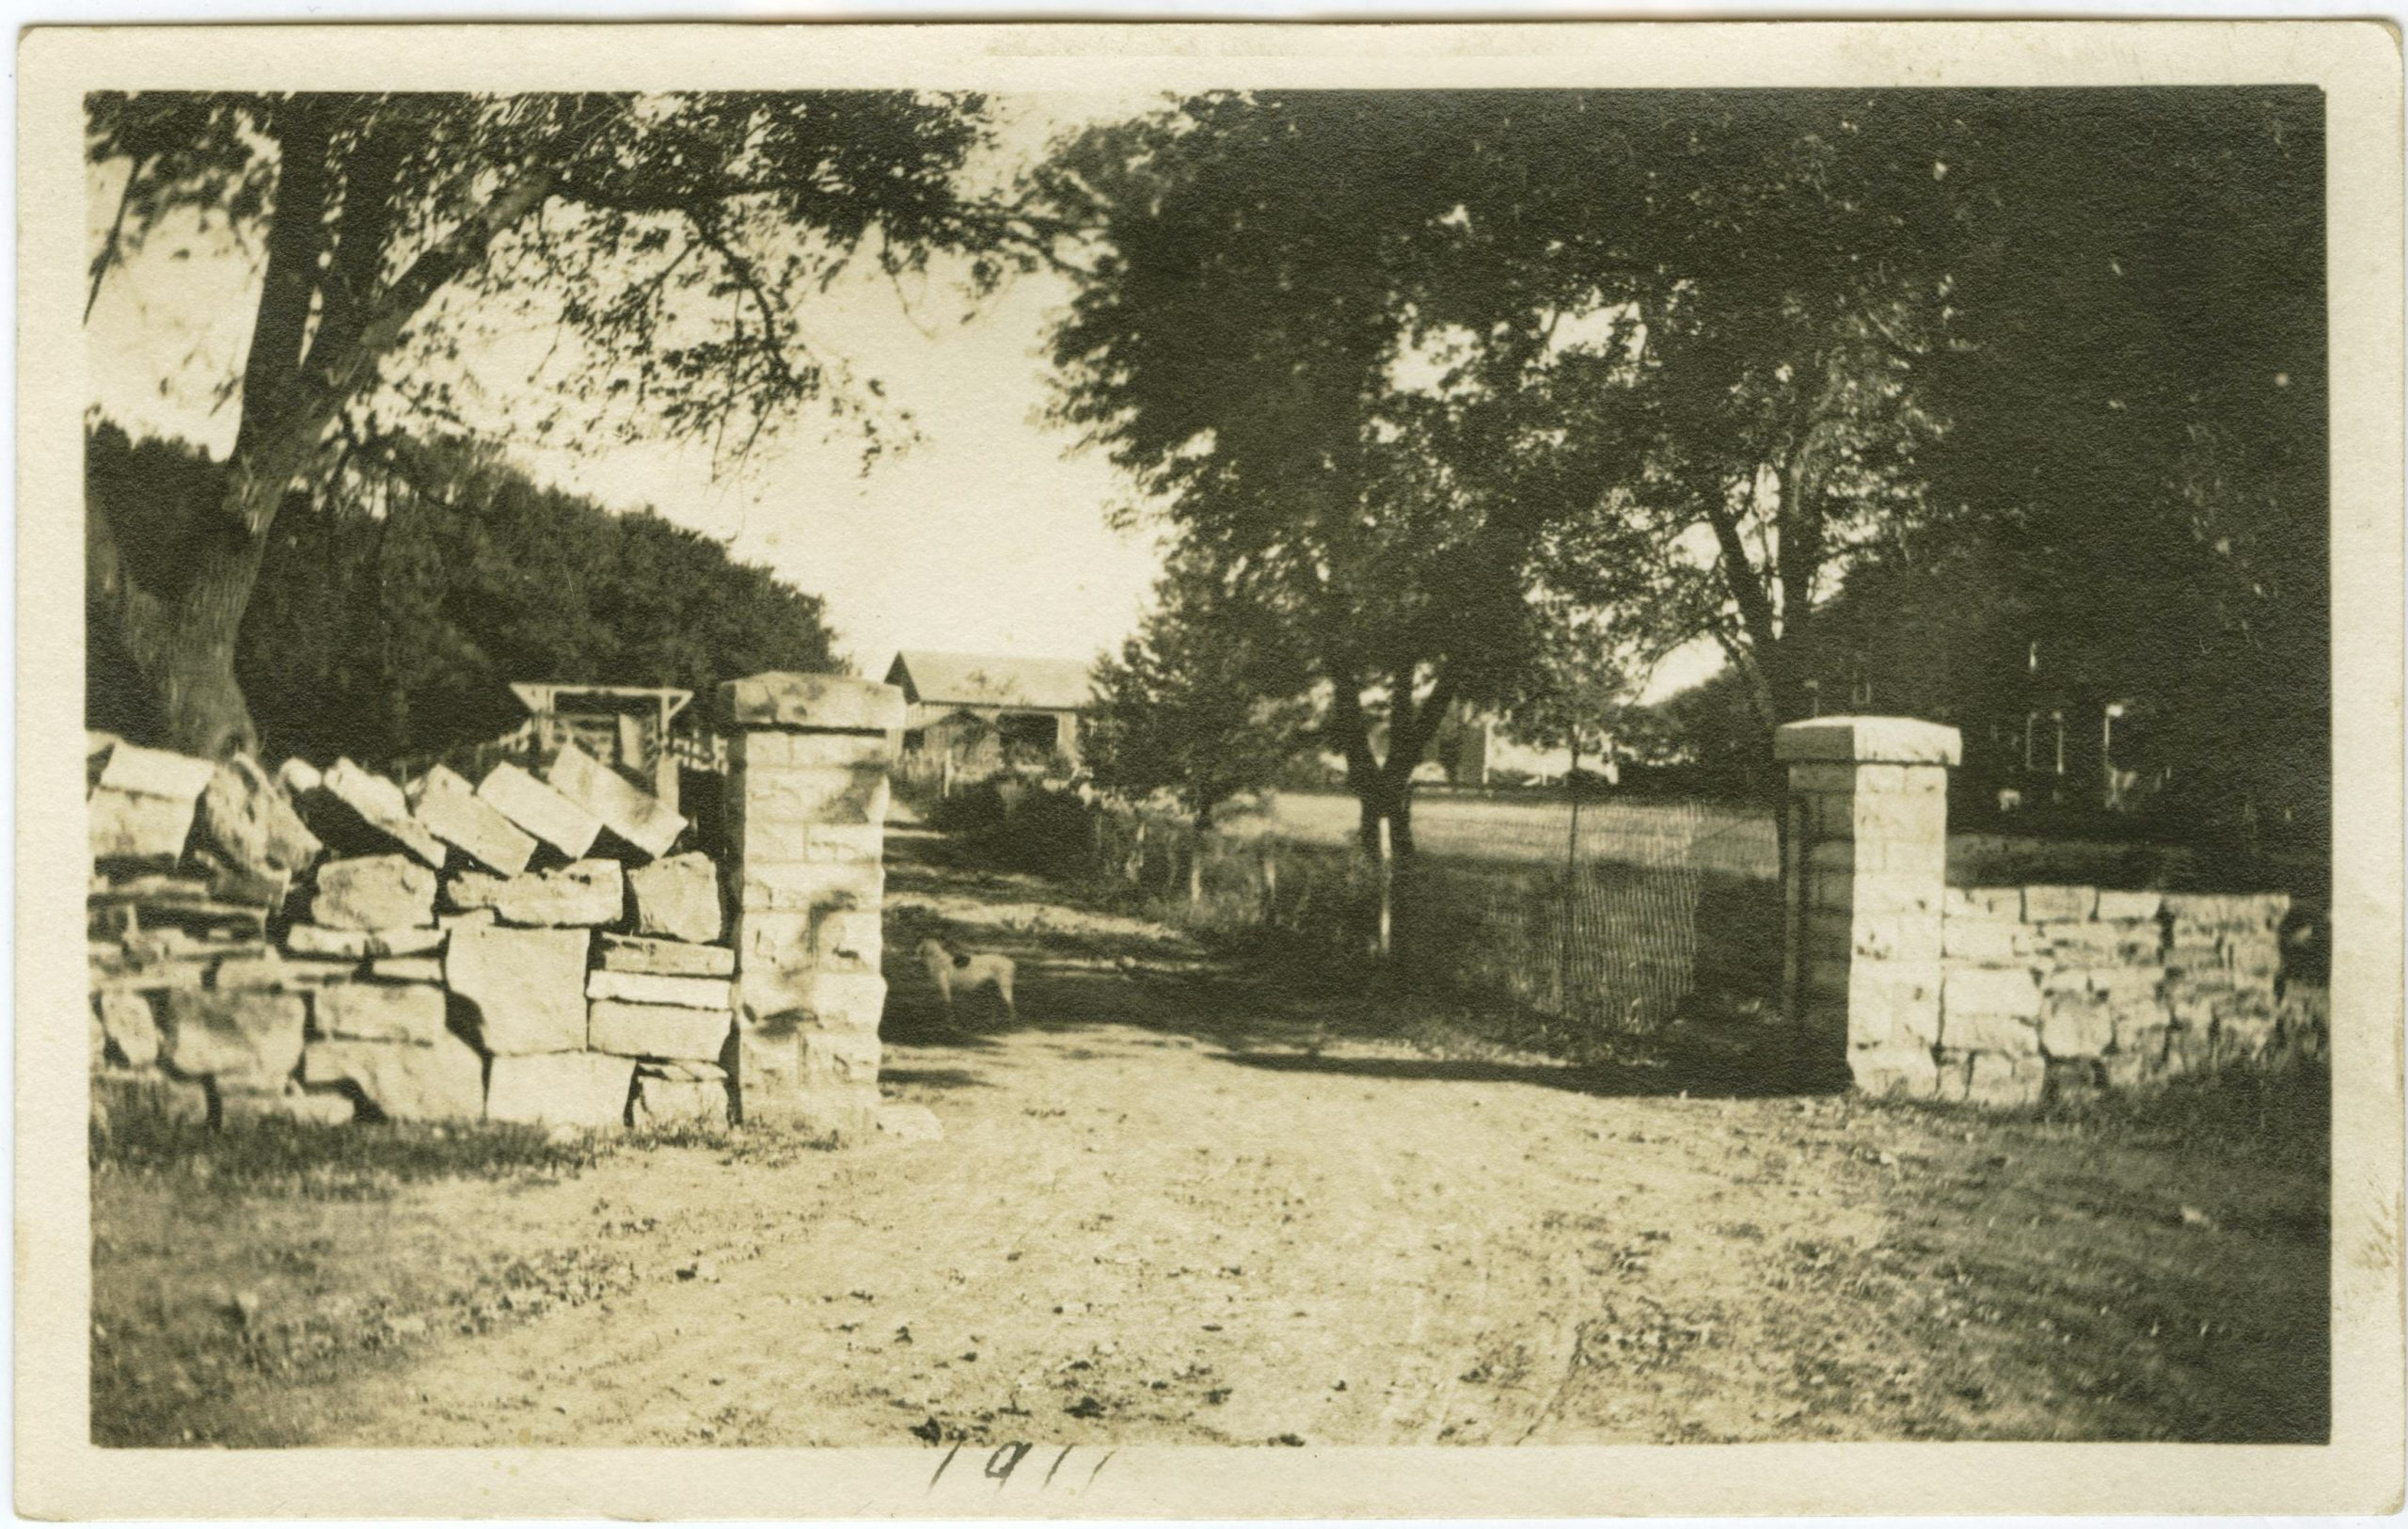 Details of stone fence entrance in 19100